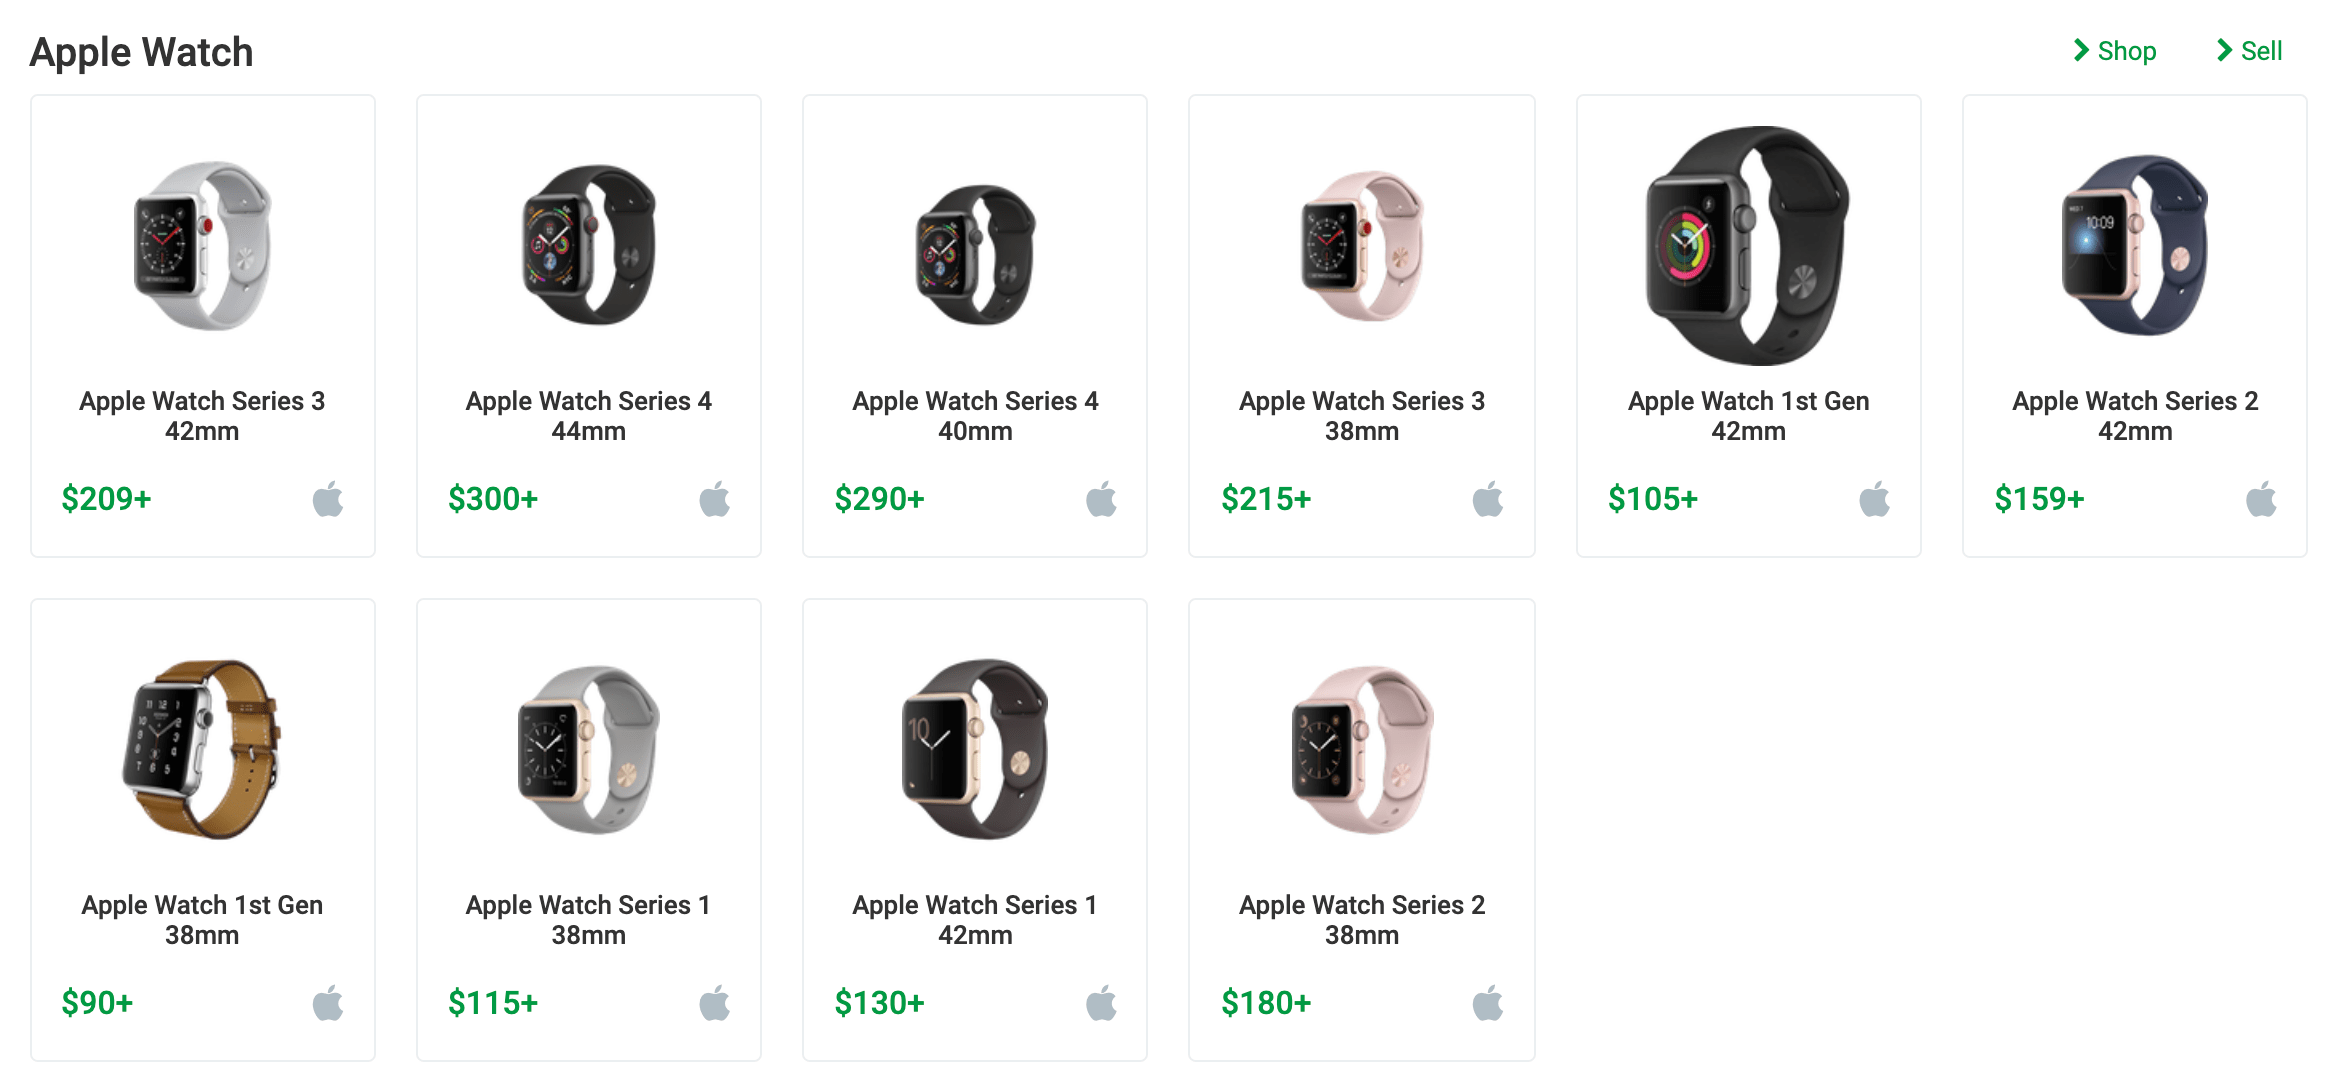 How to Trade in Your Apple Watch — The Ultimate Guide